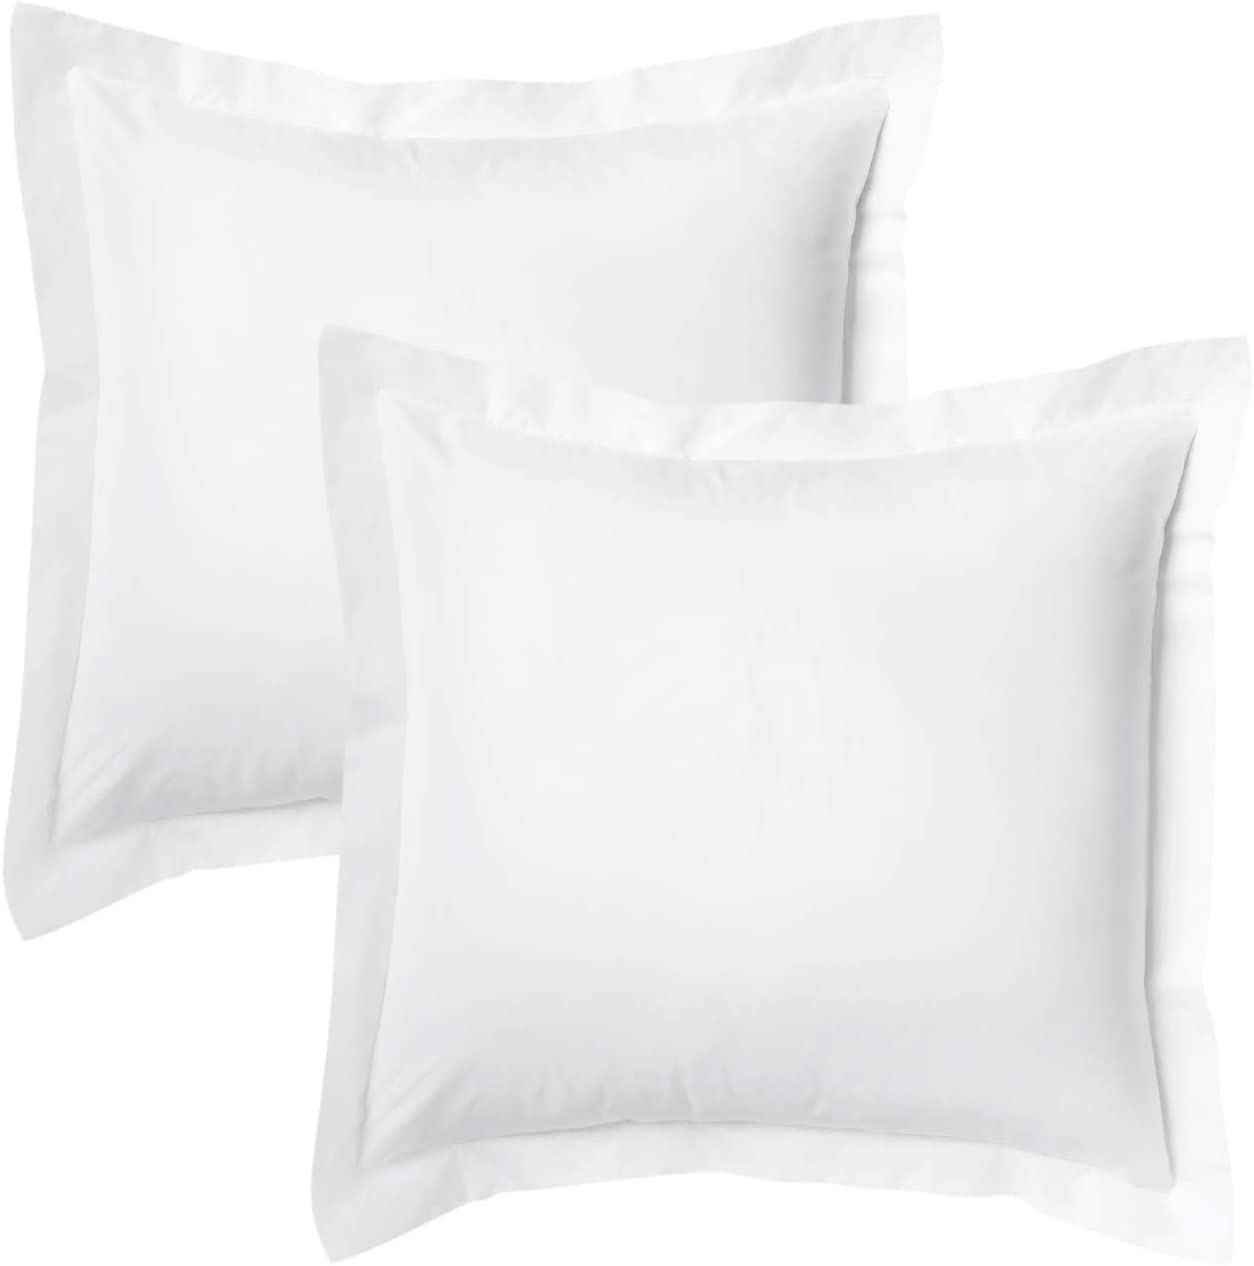 Natura Pura Premium 1000 Thread Count, Pillow Sham 100% Cotton, 2 Inch Border Pillow Cover, (Throw/Euro Sized 24 by 24 inch) White, Set of 2